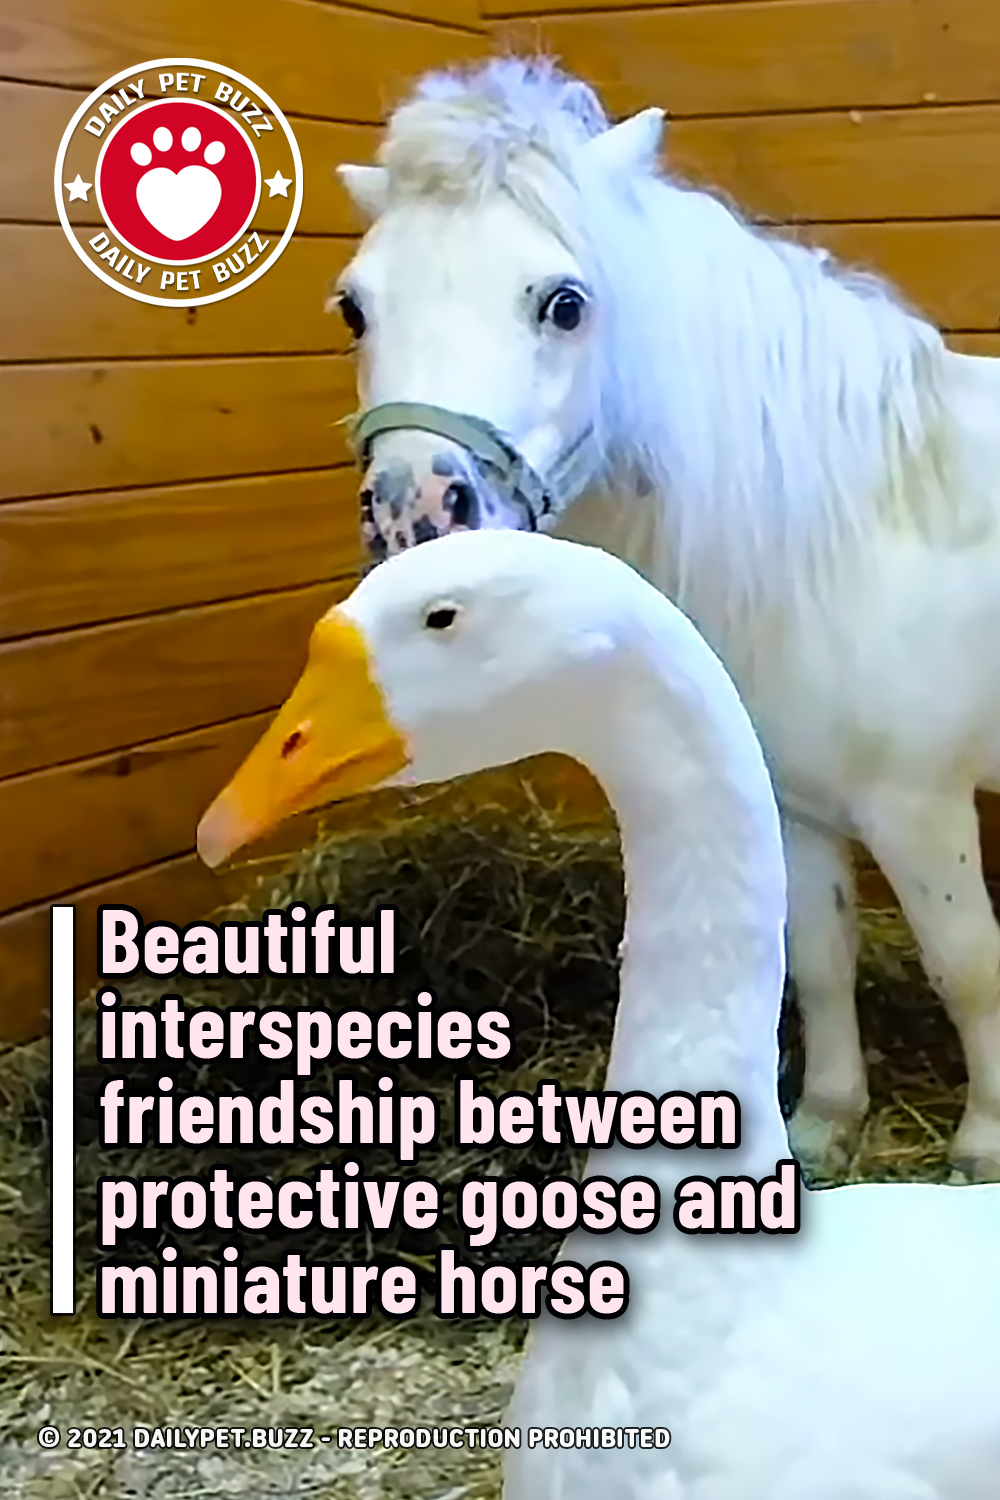 Beautiful interspecies friendship between protective goose and miniature horse